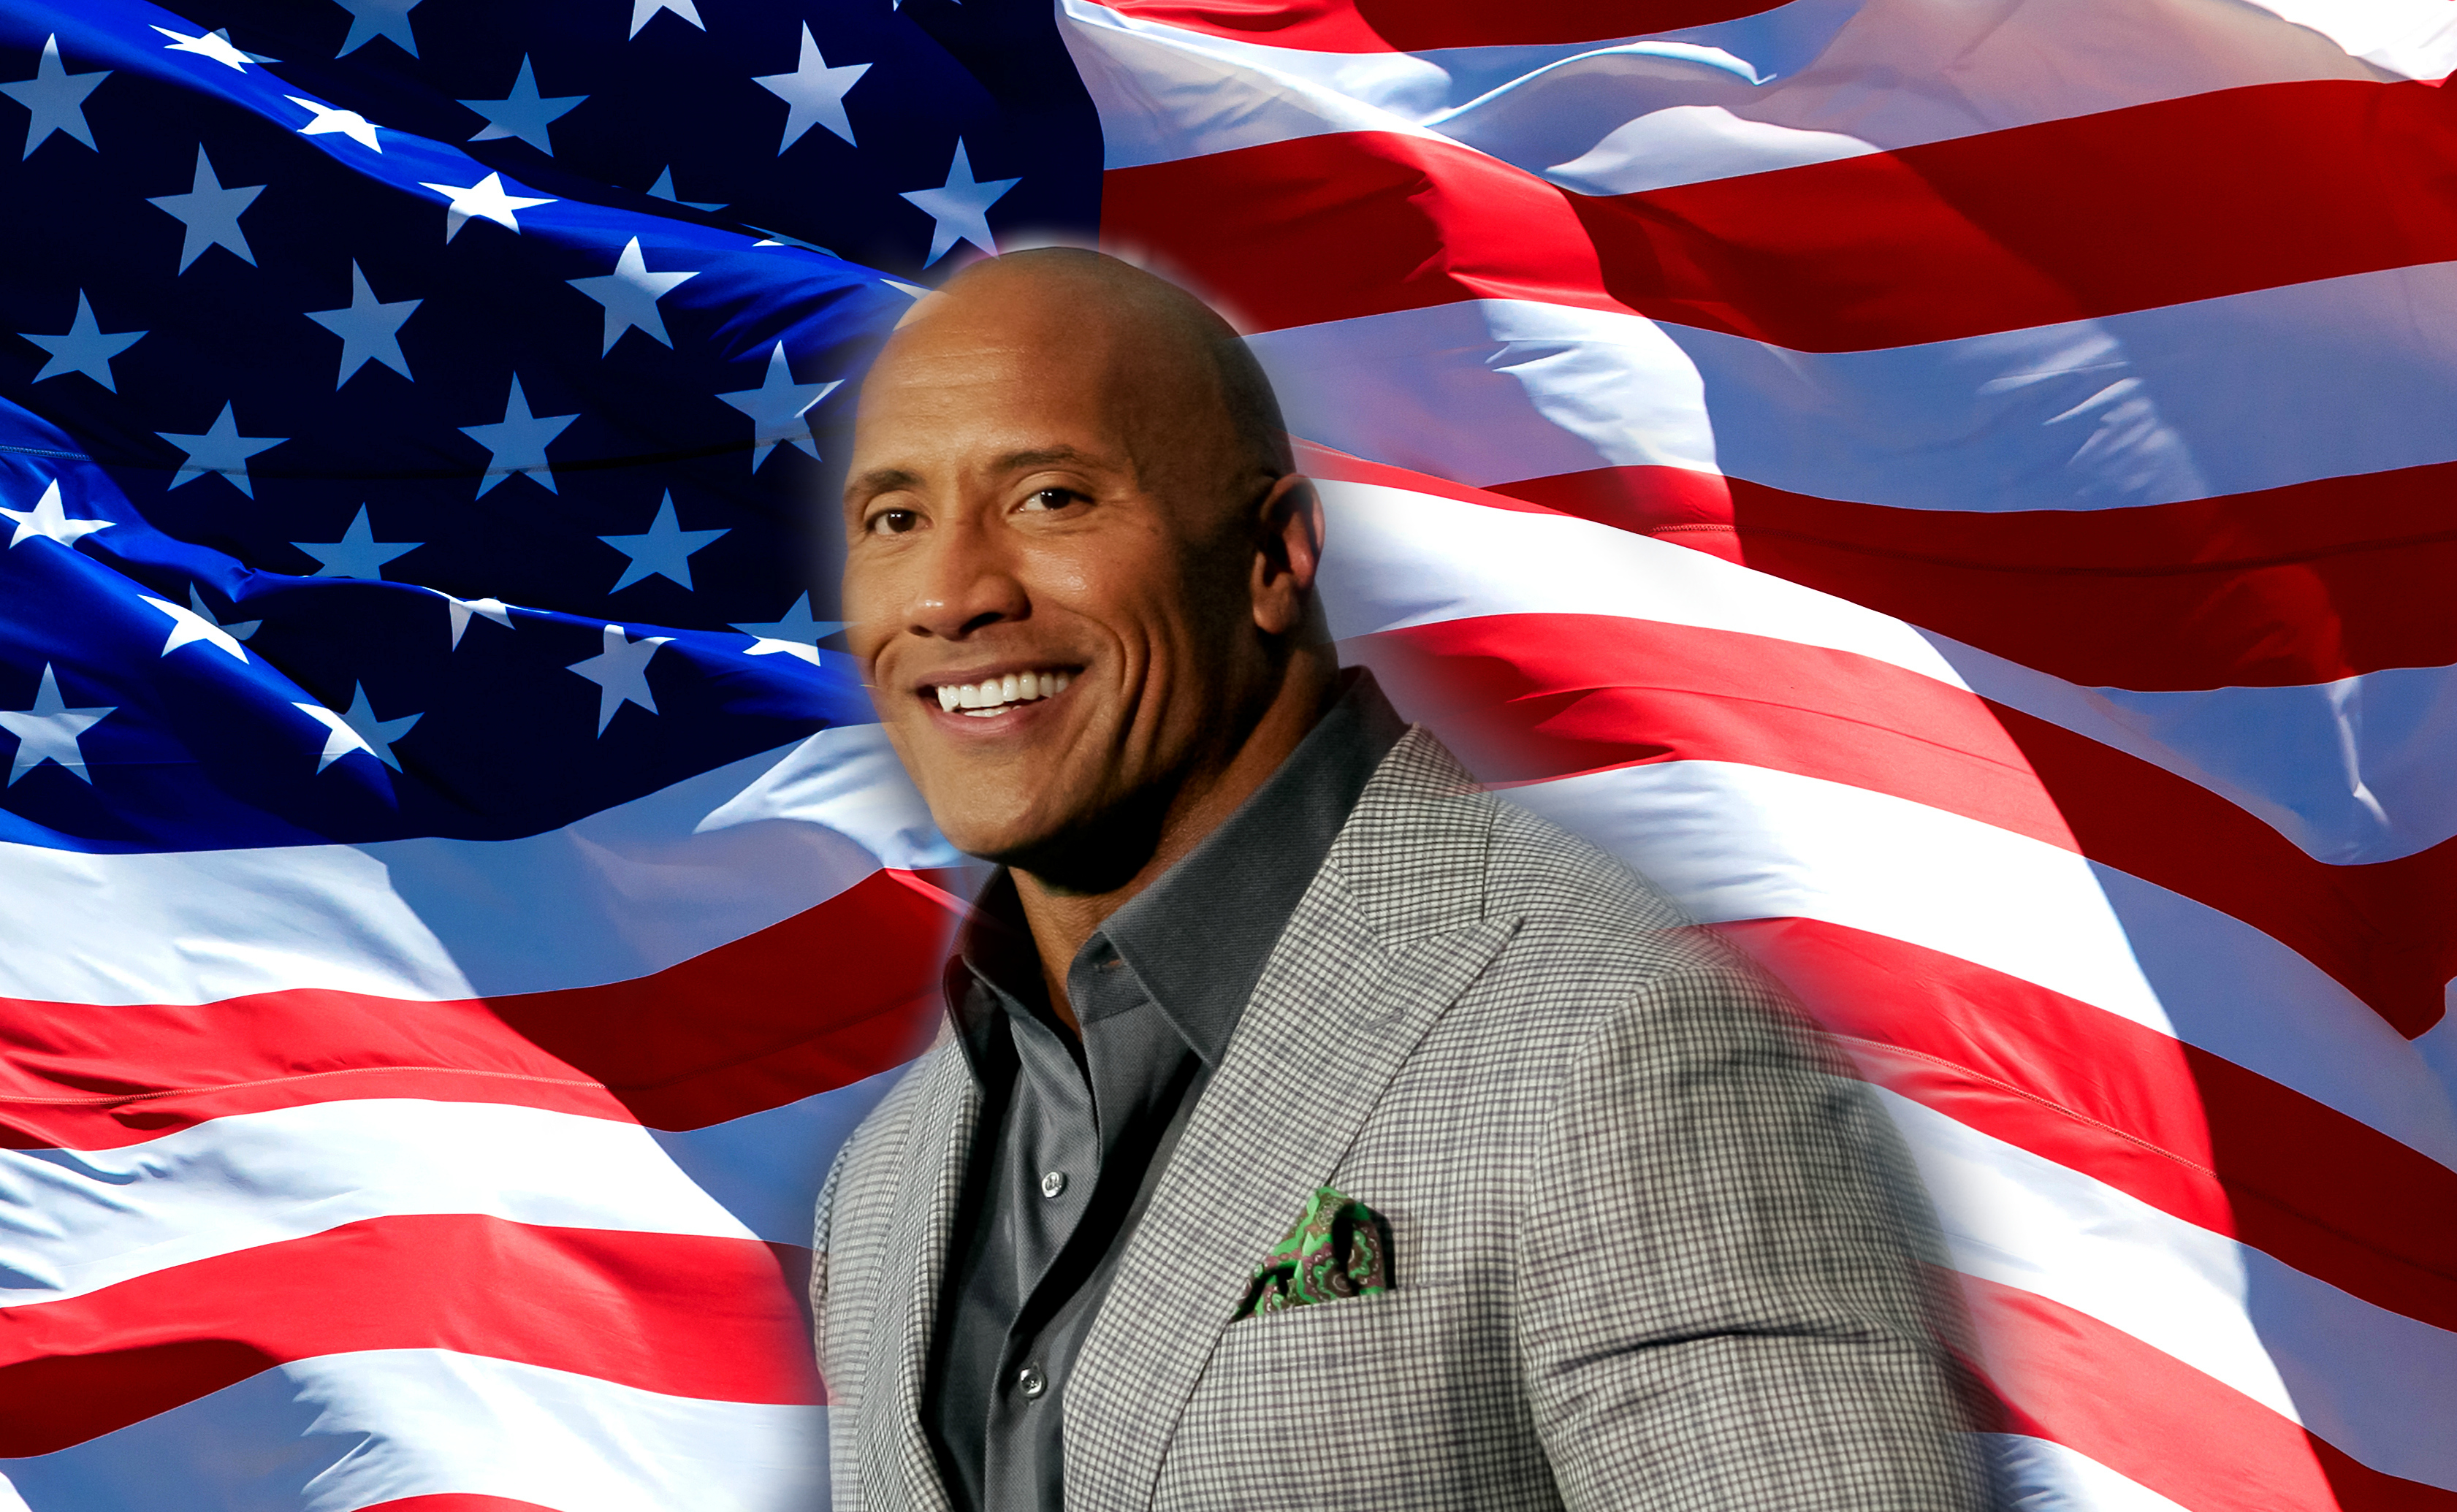 Because we need a light in the darkness, The Rock has actually filed paperwork to run for President